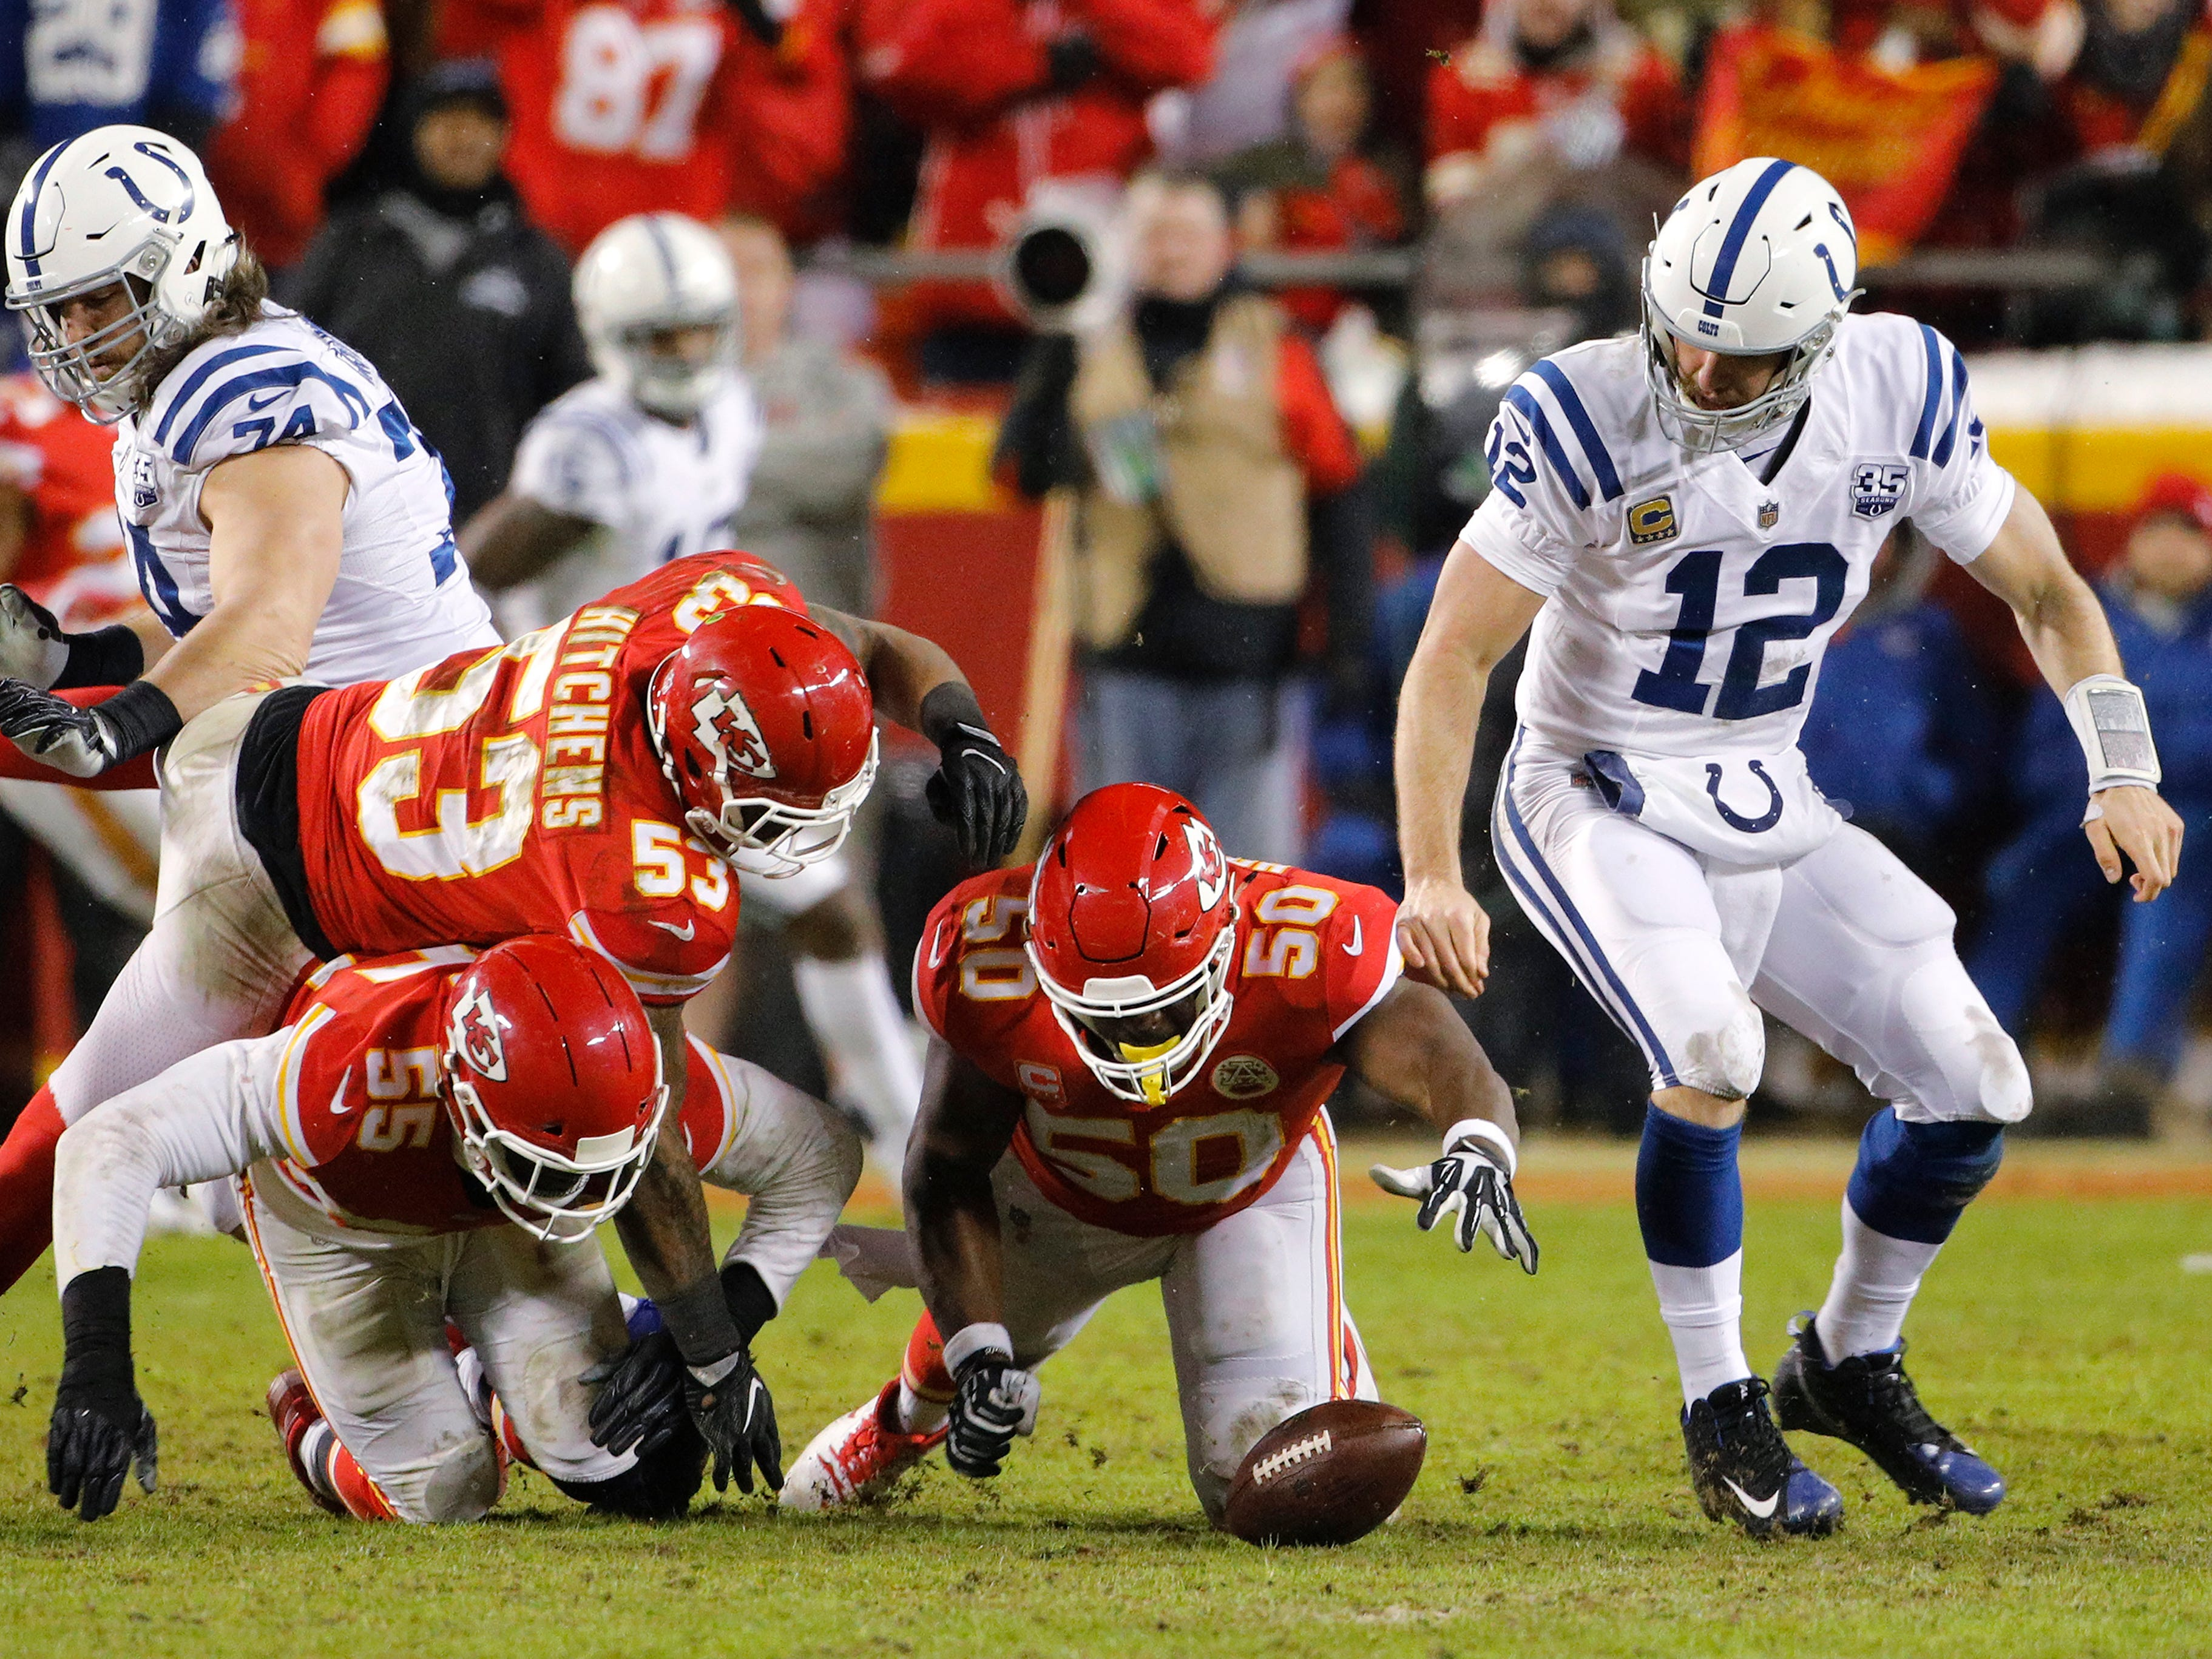 Kansas City Chiefs linebackers Anthony Hitchens (53), Dee Ford (55) and Justin Houston (50) go after a fumble by Indianapolis Colts quarterback Andrew Luck (12) during an AFC divisional NFL football game at Arrowhead Stadium in Kansas City, Mo., Saturday, Jan. 12, 2019. The fumble ended a Colts' drive in Chiefs territory.